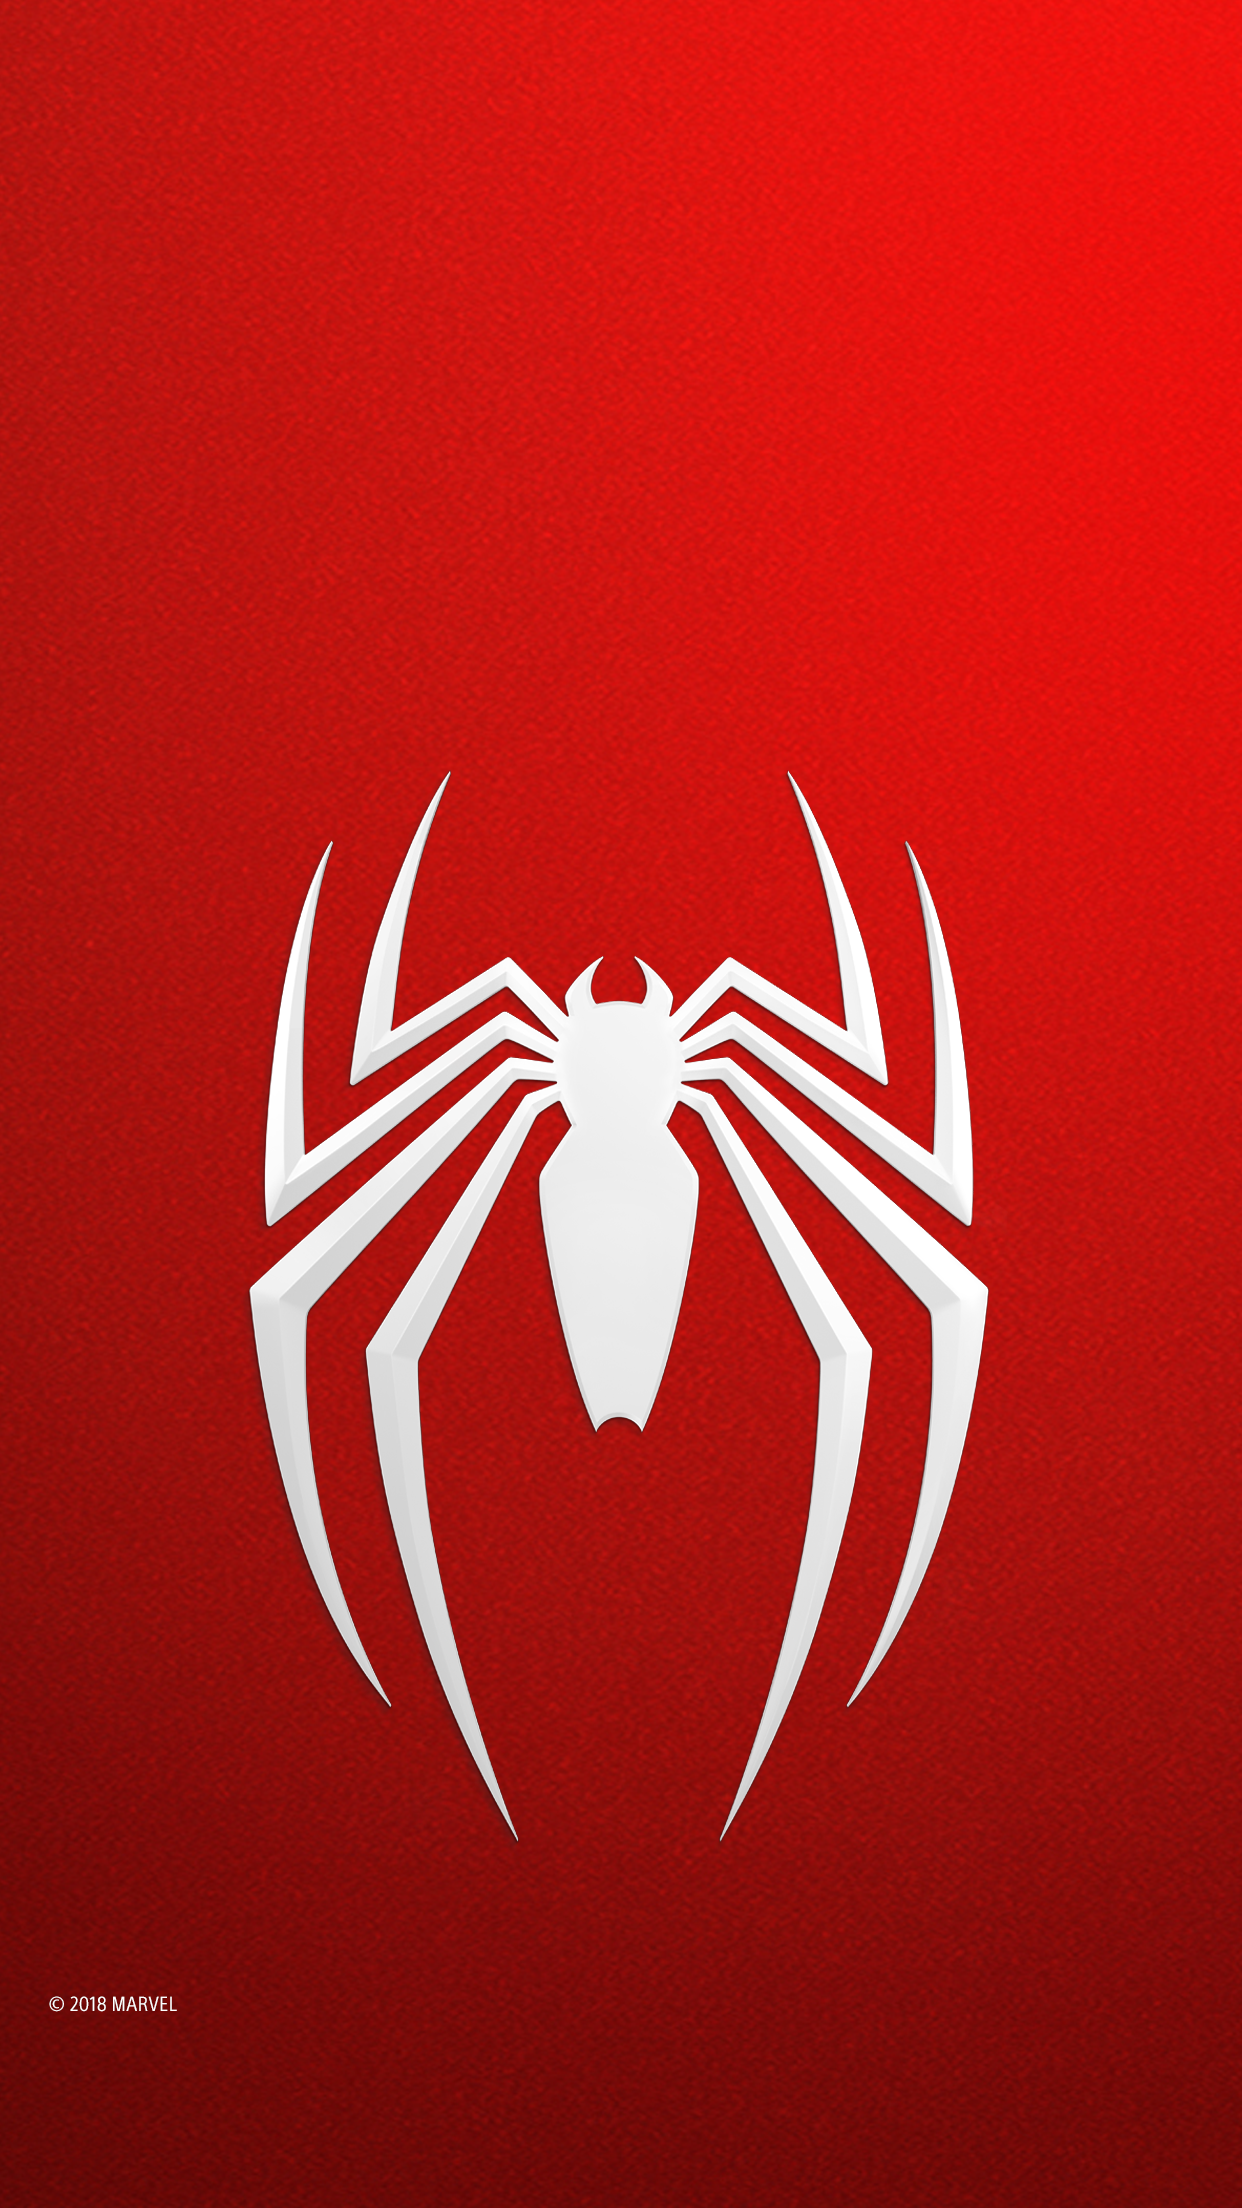 Pin By Yashpal Ghuman On Super Heroes Marvel Spiderman Spider Spiderman Ps4